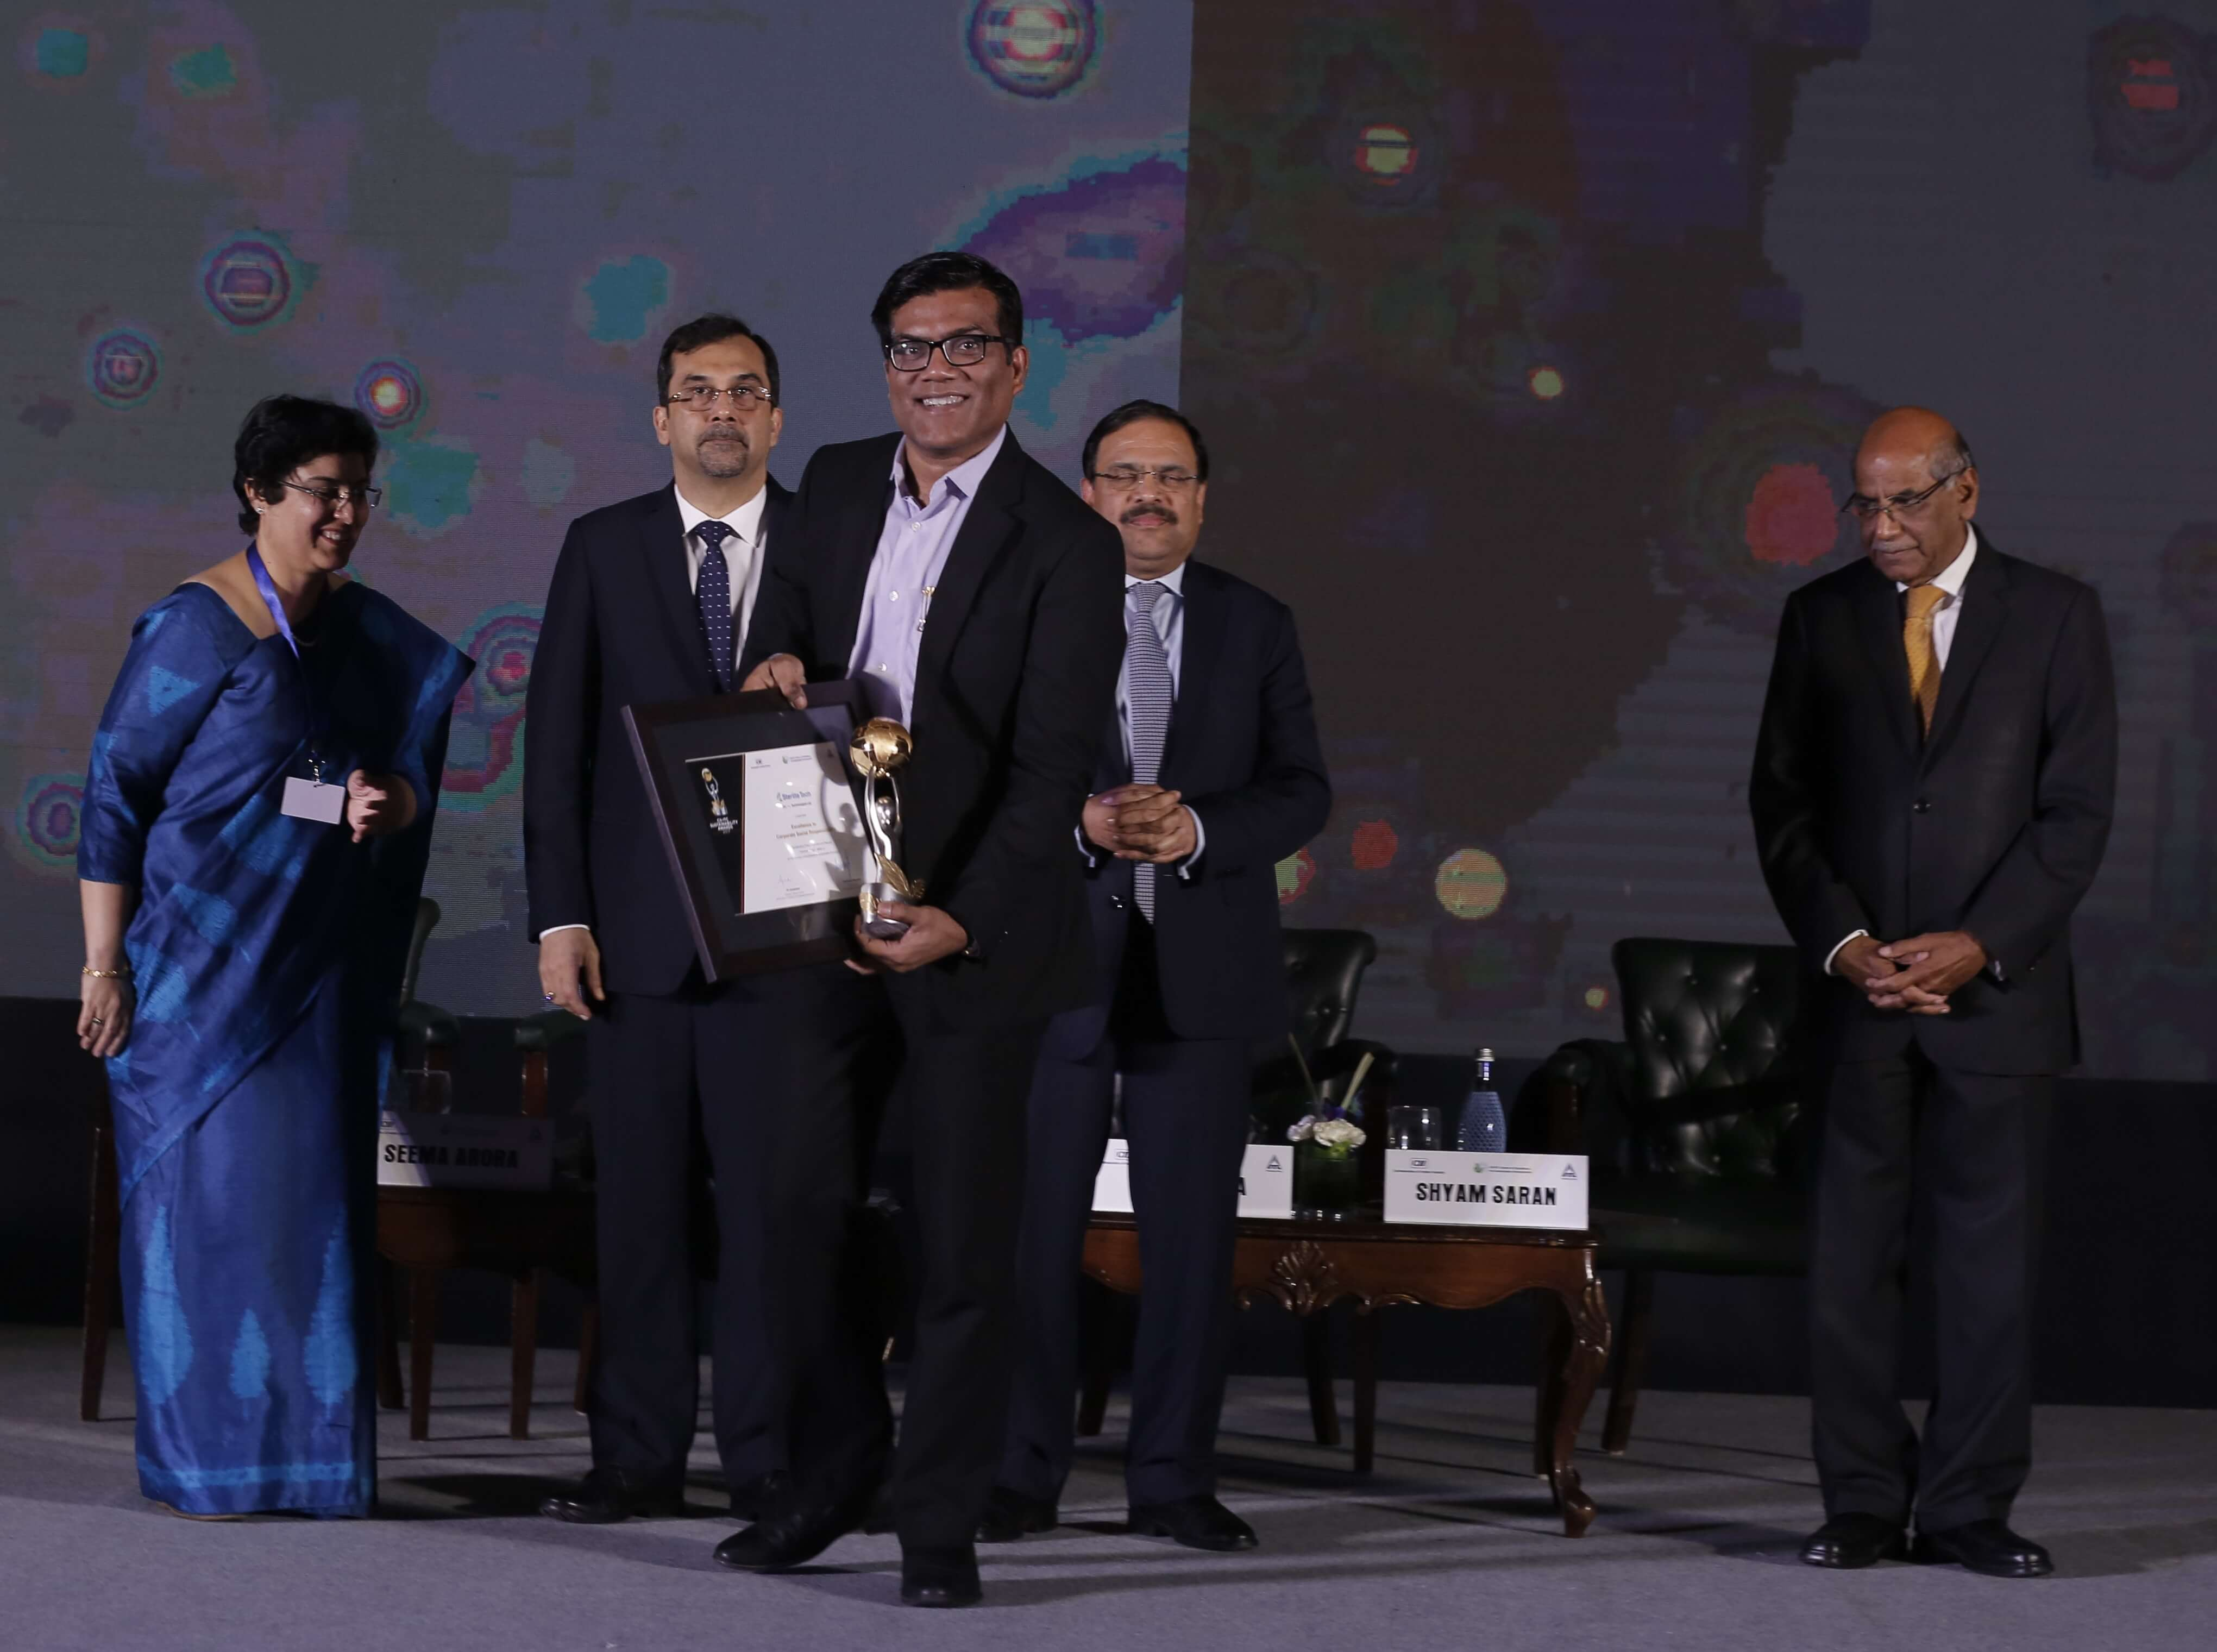 Sterlite Tech Wins CII-ITC Sustainability Award 2017 for Excellence in Corporate Social Responsibility